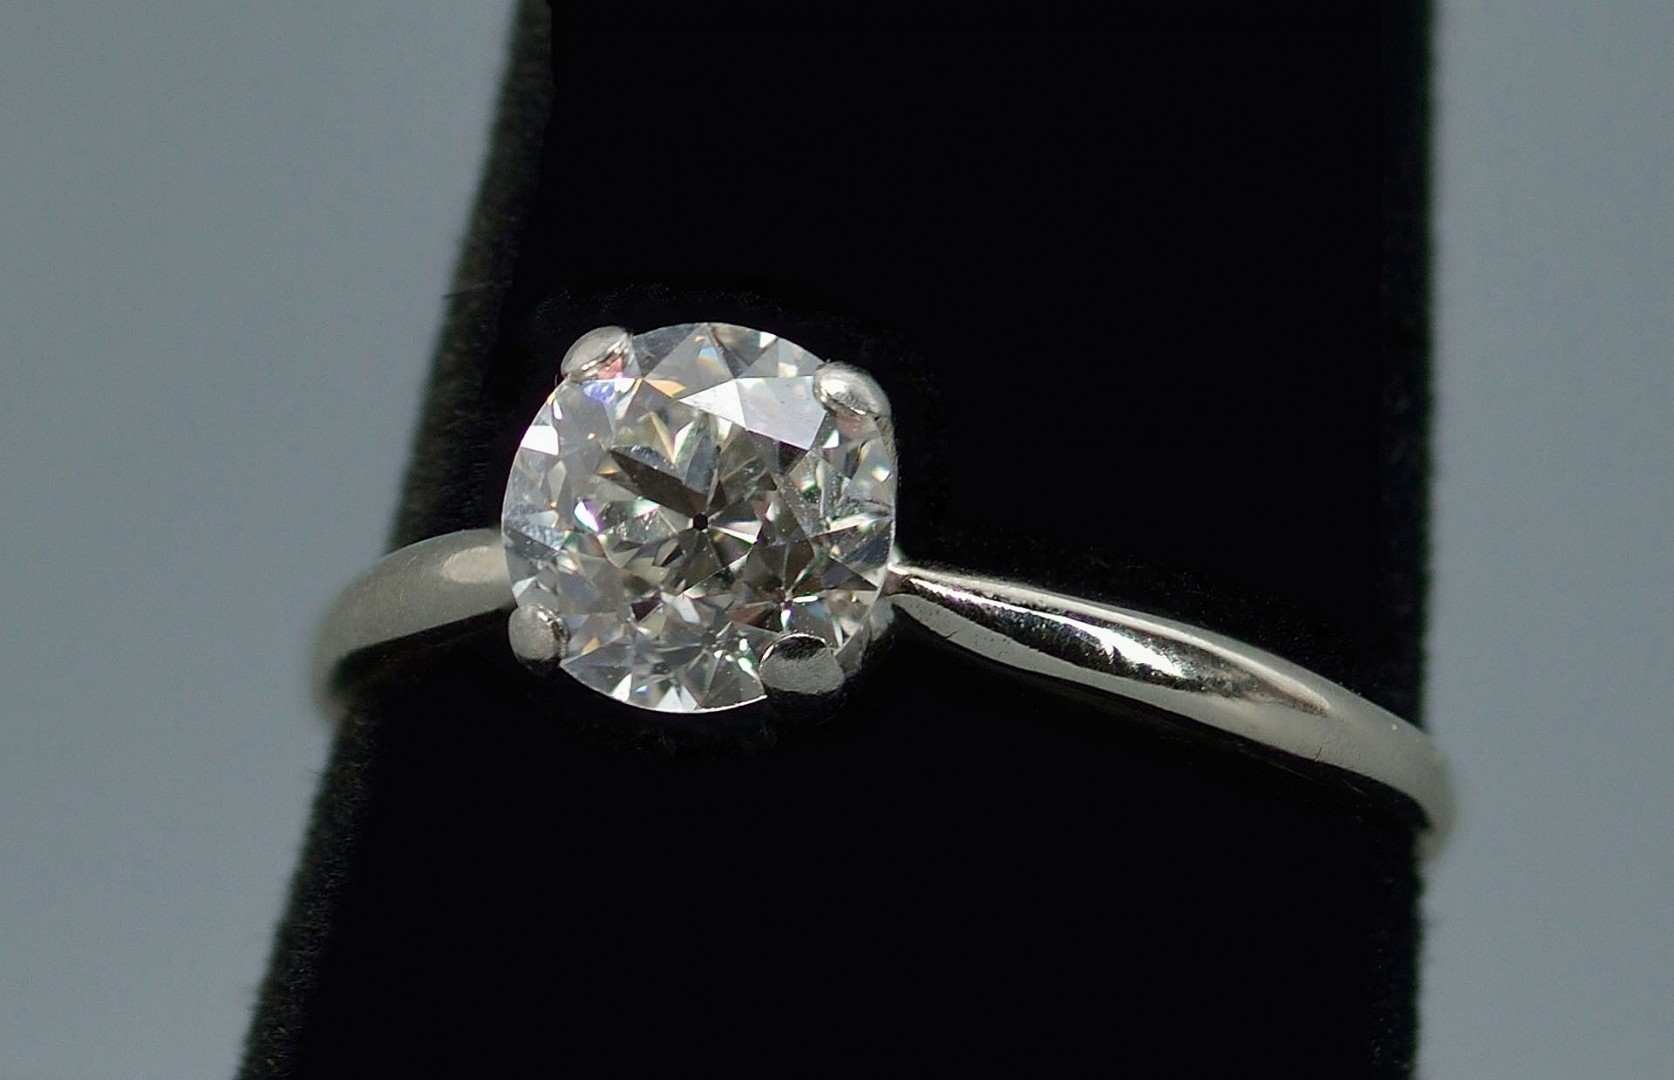 Lot 279: 14k Euro cut Diamond Solitaire Ring, 1.35 ct